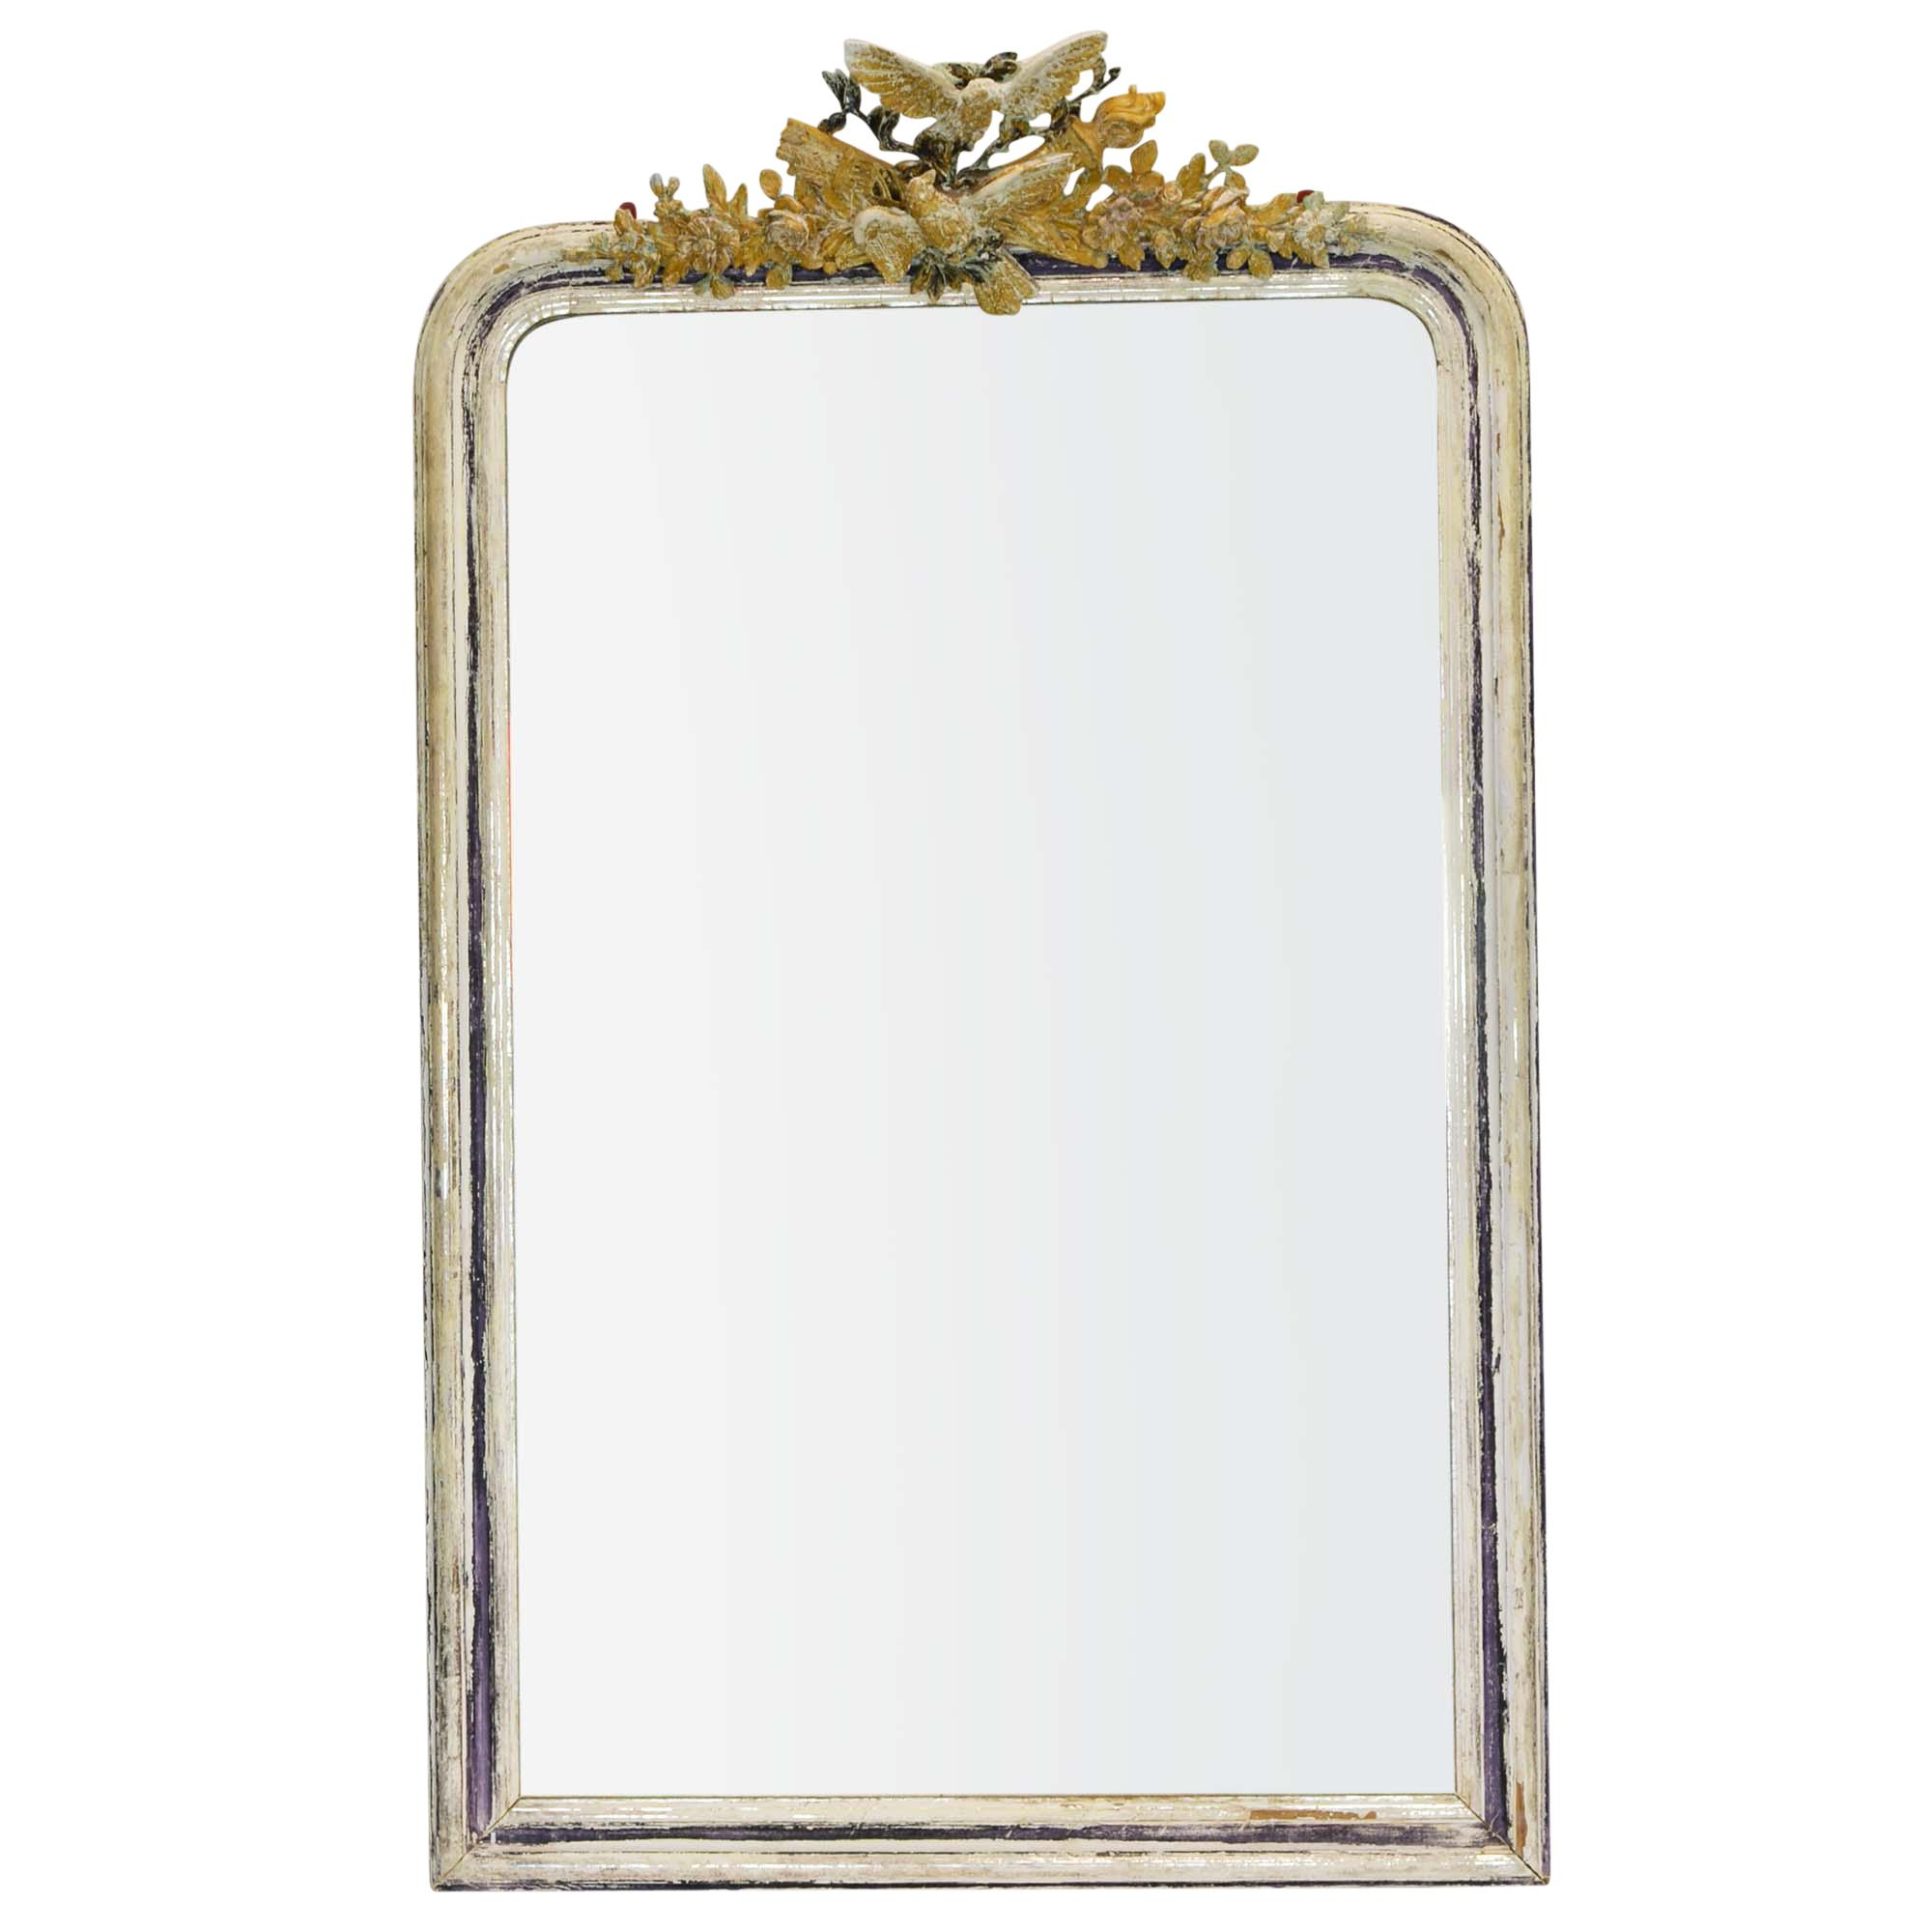 Latest Antique 19Th Century Wall Mirror With Decorative Bird Detail For Bird Wall Mirrors (Gallery 20 of 20)